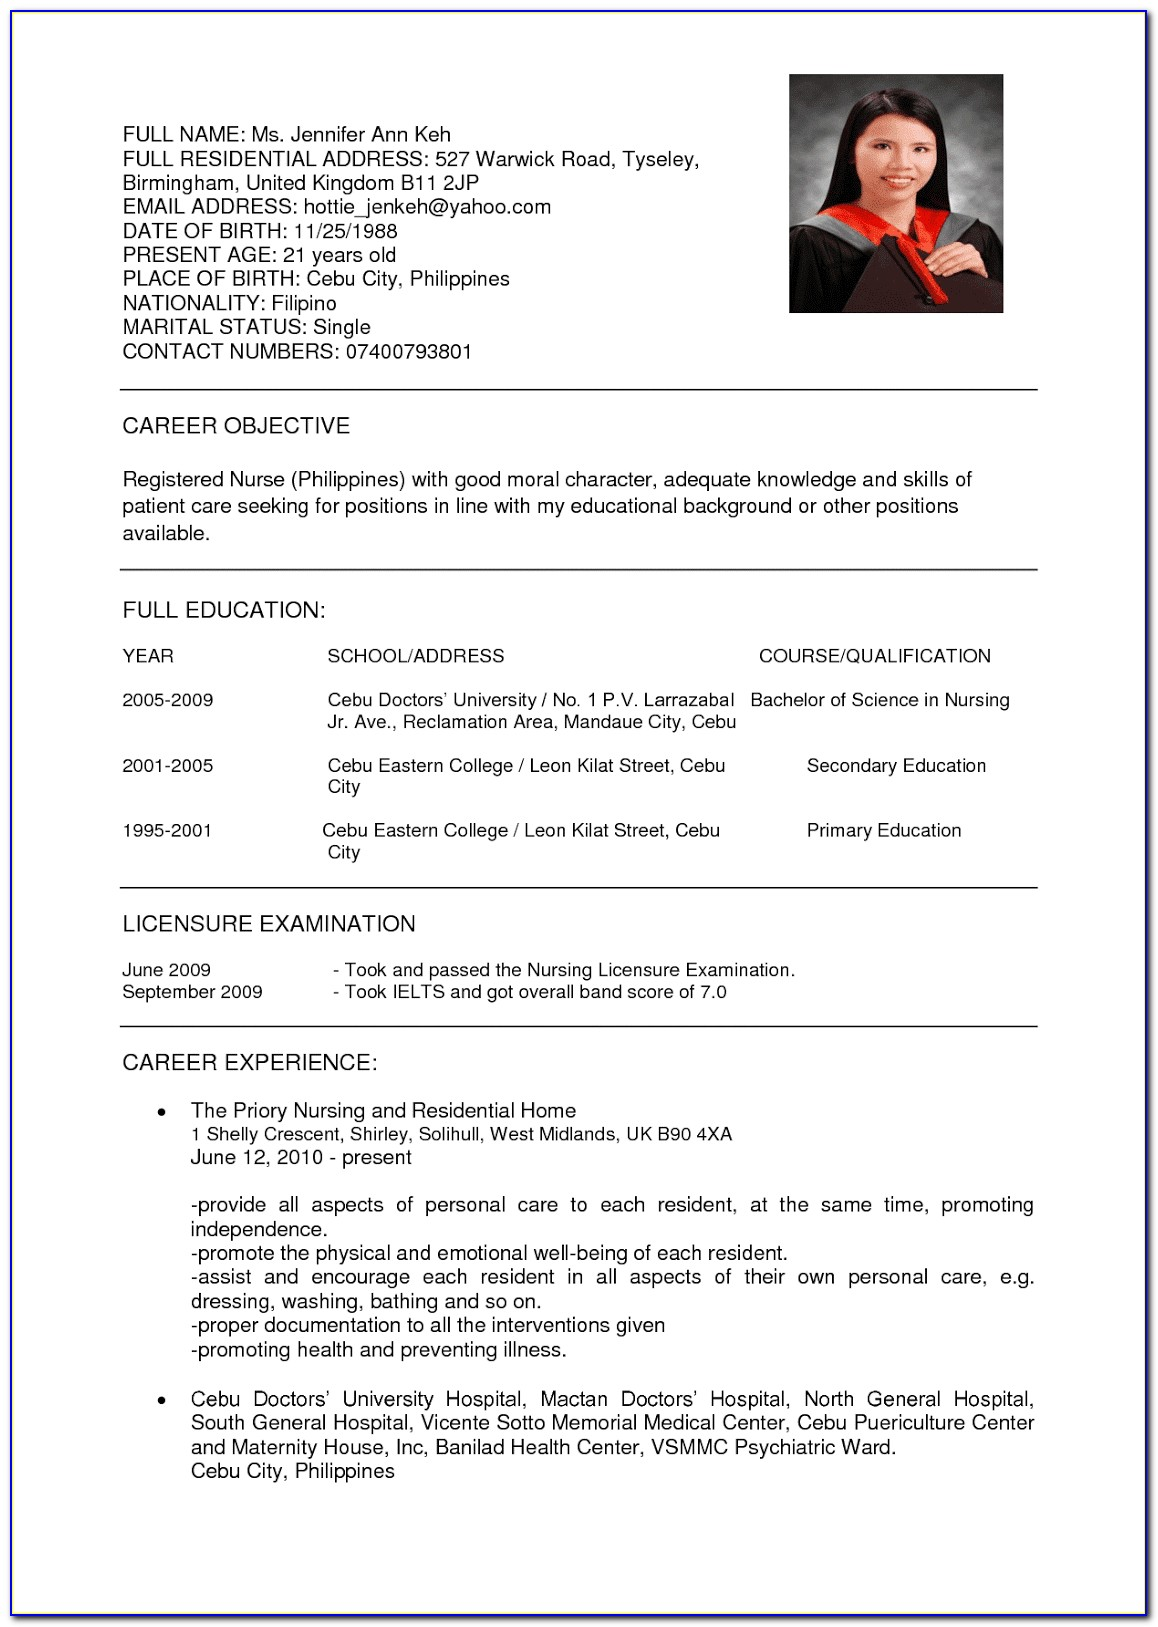 resume format and on the eighth created curriculum vitae hospital cleaning job sample pdf Resume Hospital Cleaning Job Resume Sample Pdf